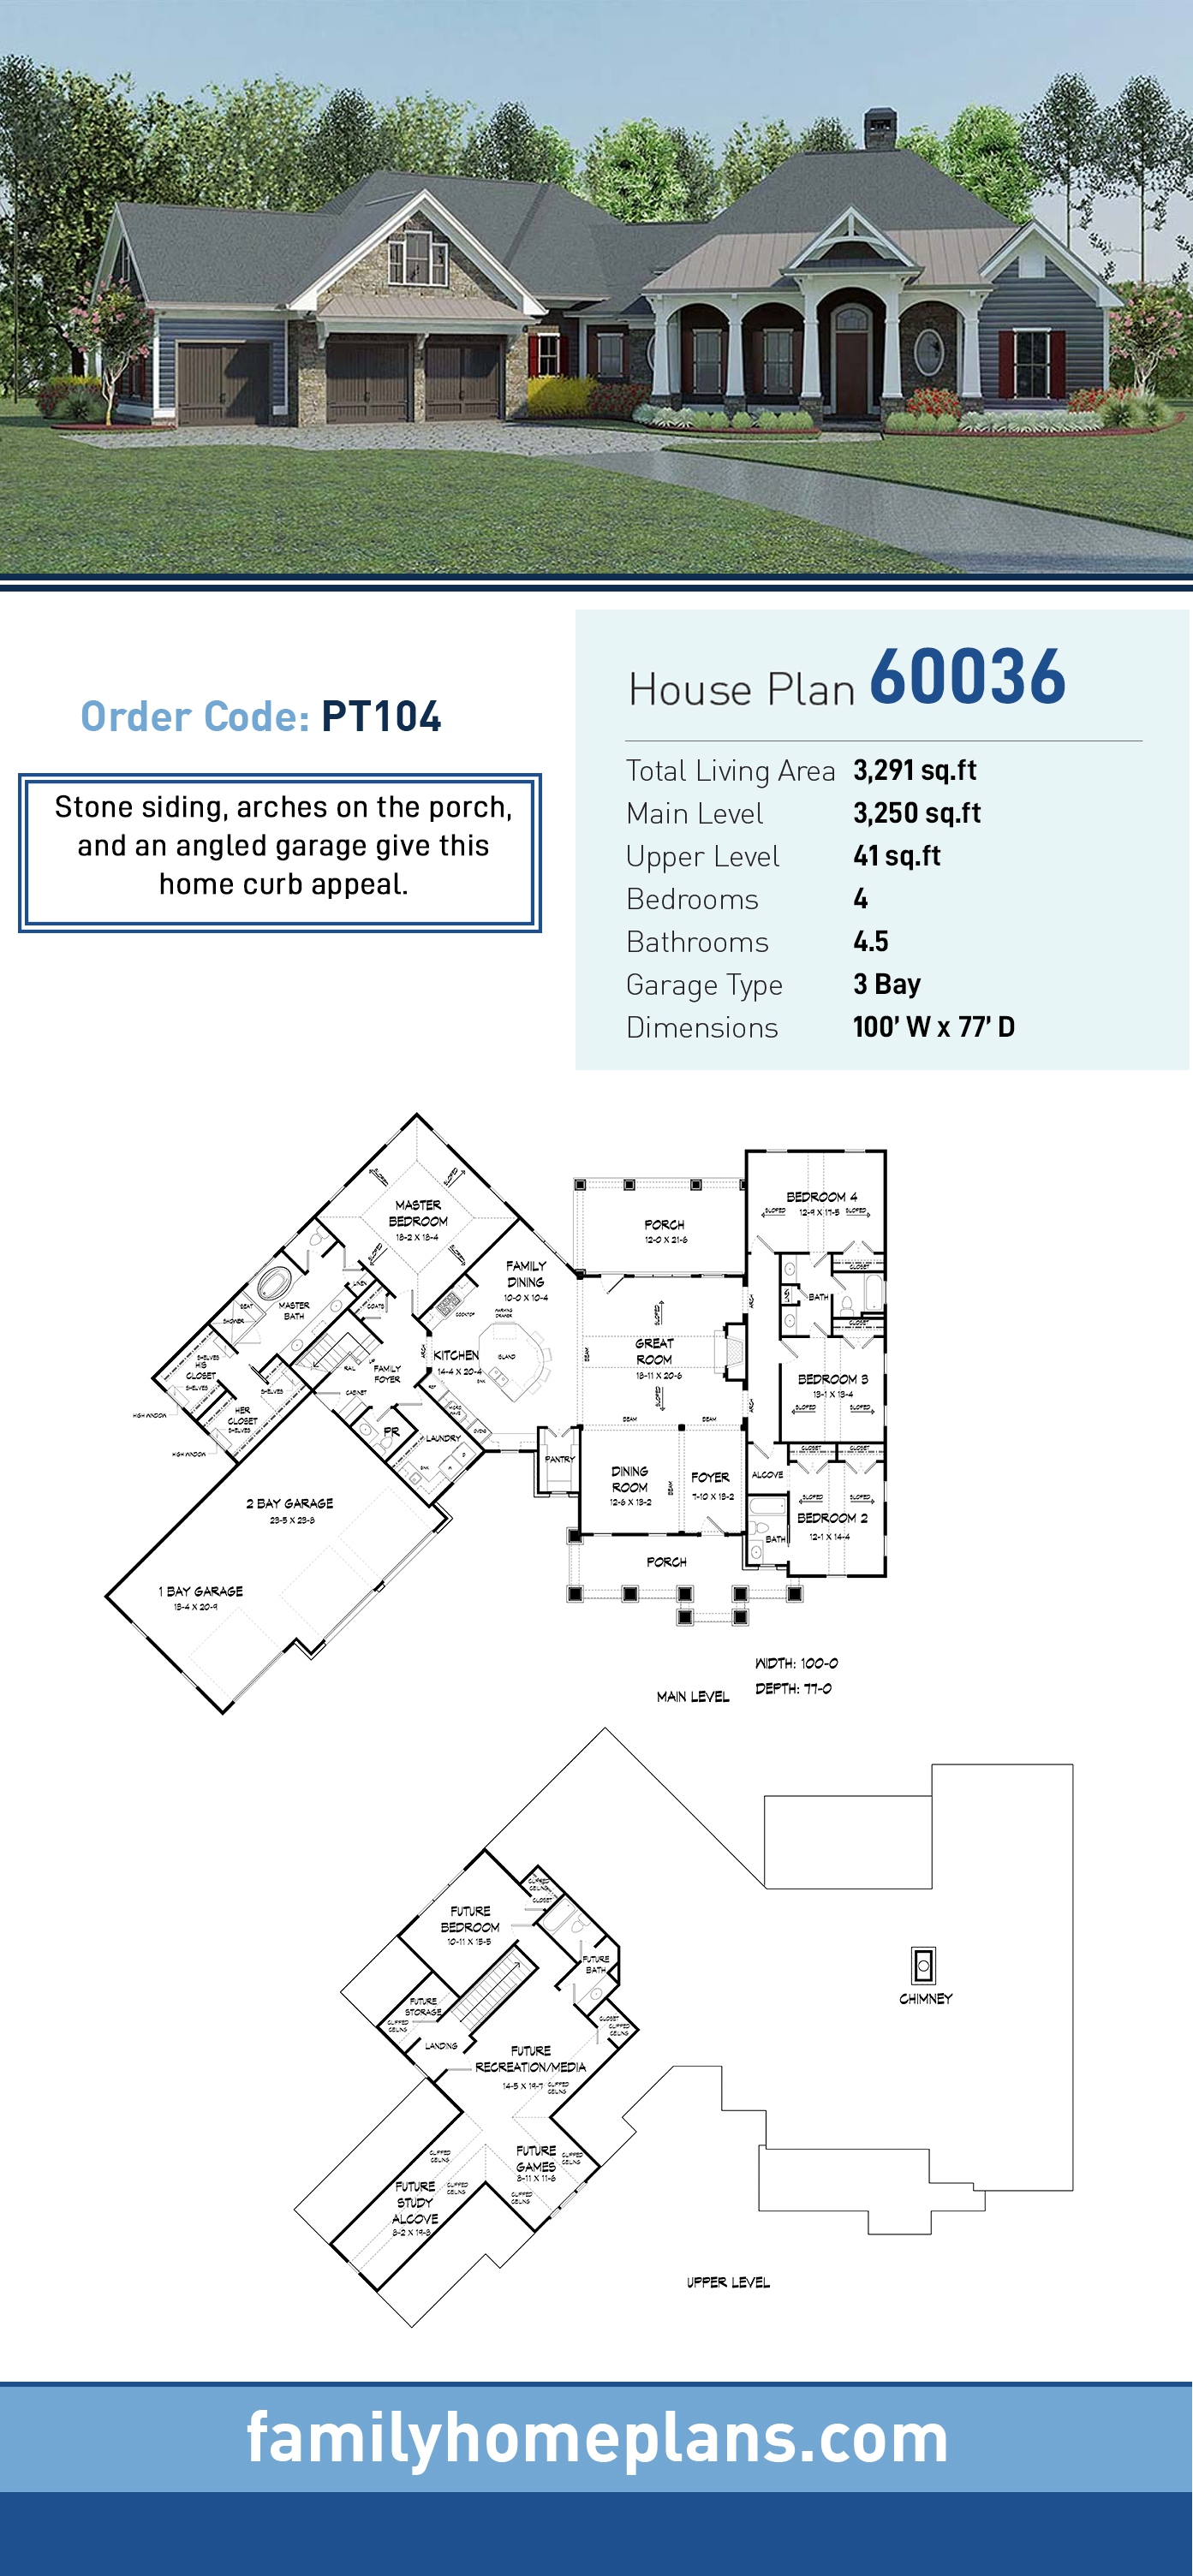 Craftsman, Traditional House Plan 60036 with 4 Beds, 5 Baths, 3 Car Garage